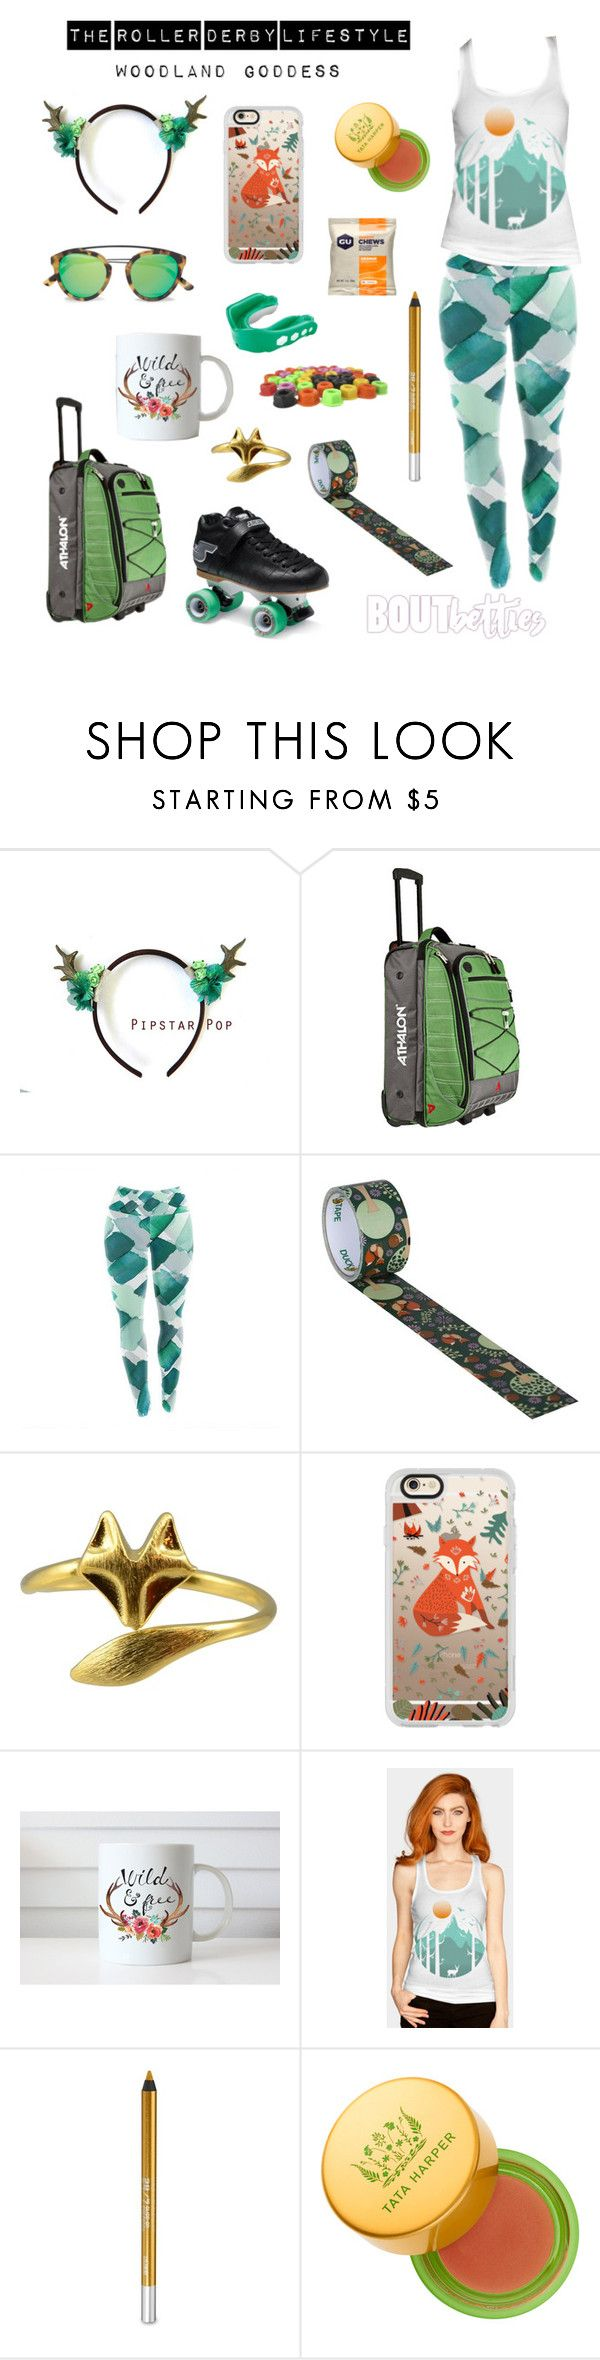 """Roller derby clothes   Fri-yay Fashion: """"Woodland Goddess"""" by Bout Betties on Polyvore featuring Athalon, Casetify, Westward Leaning, Tata Harper, Urban Decay, Riedell and Shock Doctor"""